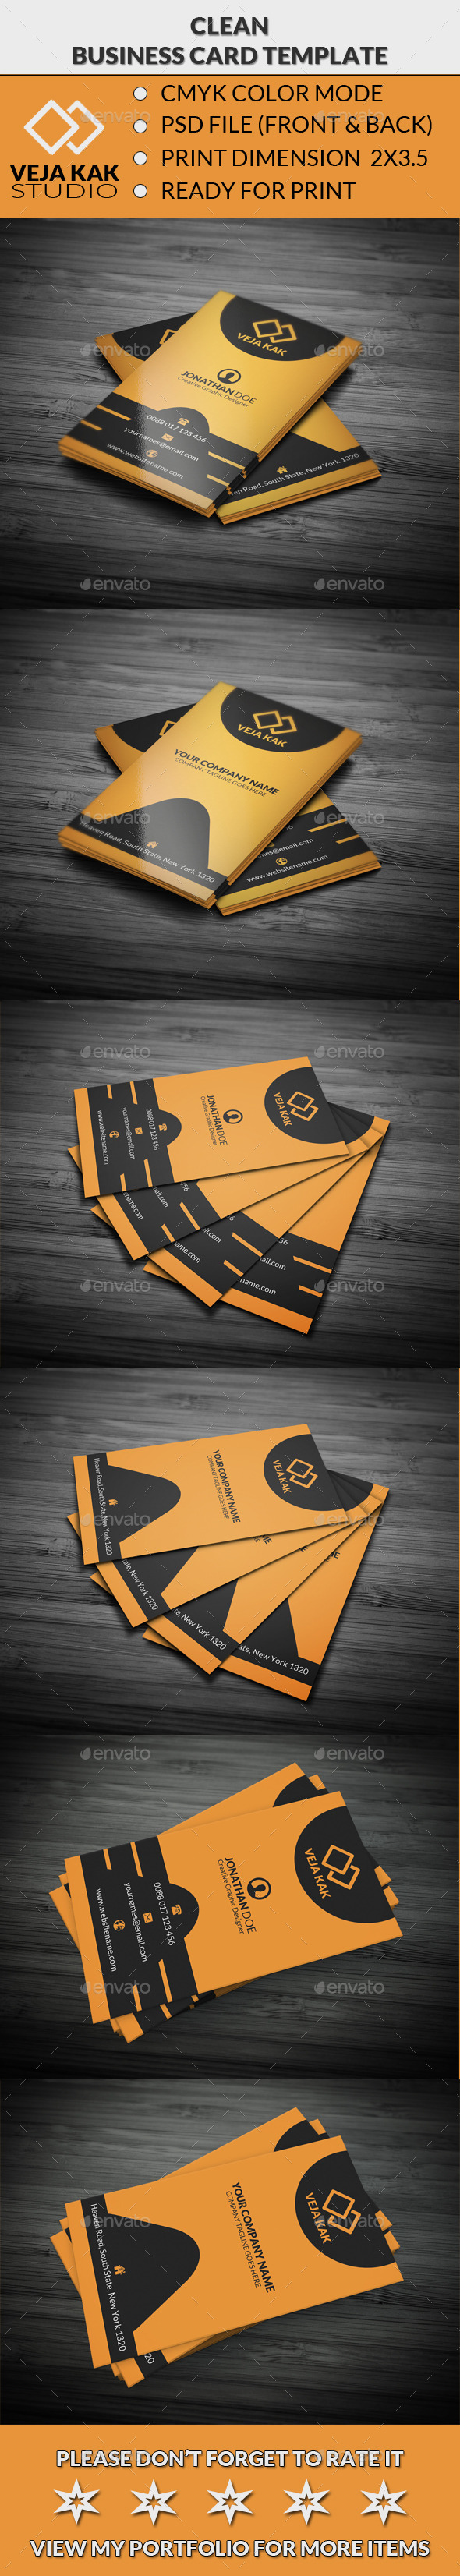 GraphicRiver Clean Corporate Business Card 10943447